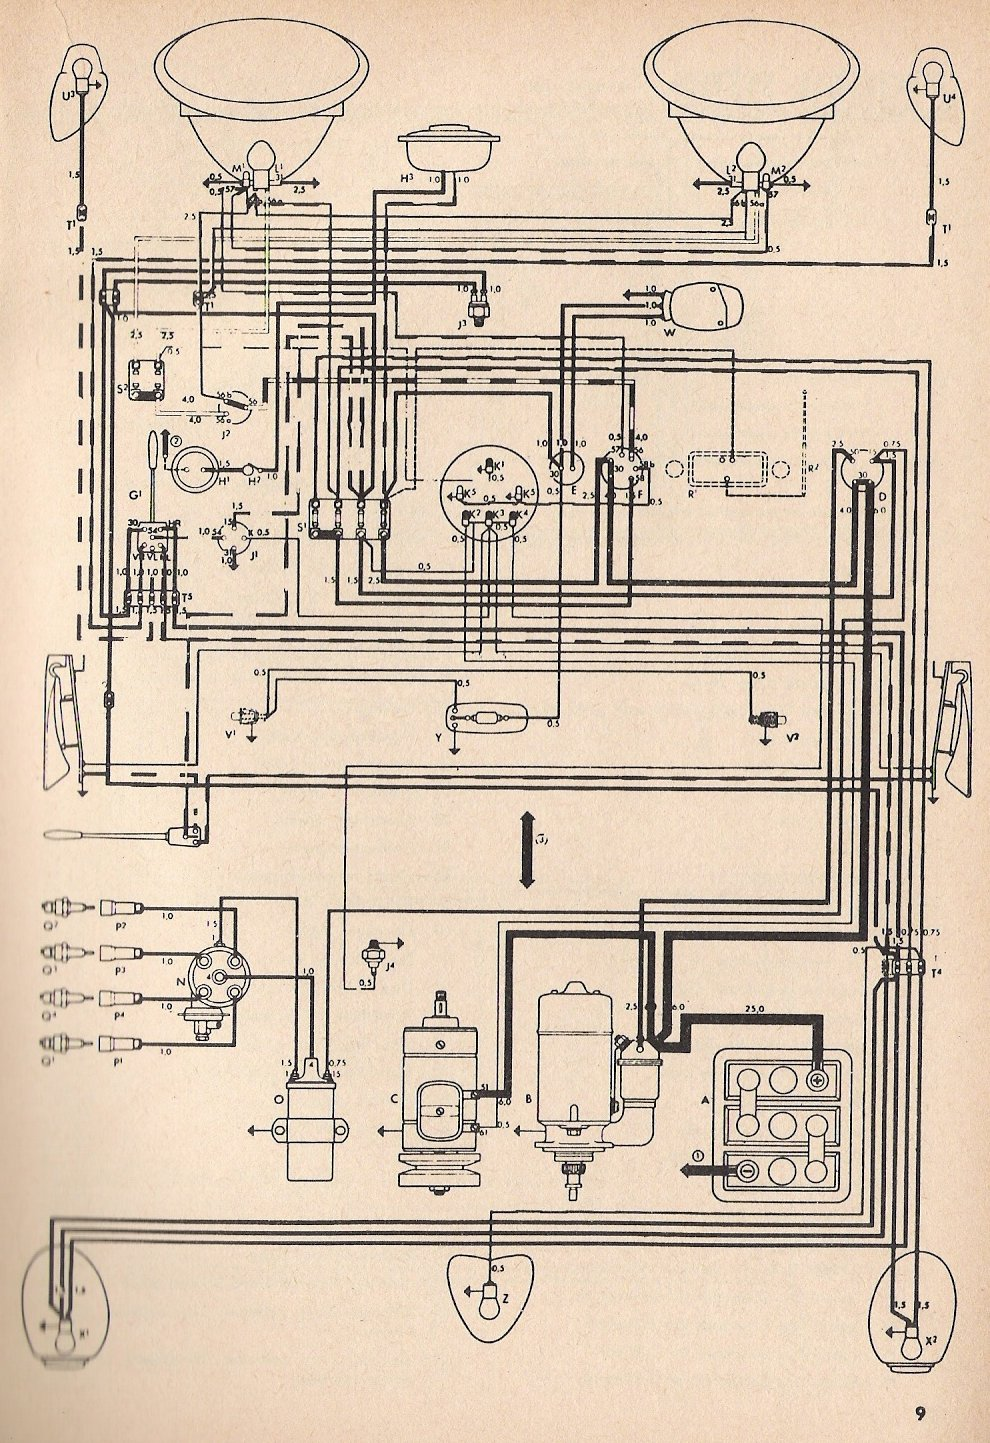 hight resolution of 58 vw alternator wiring wiring diagram forward 58 vw alternator wiring